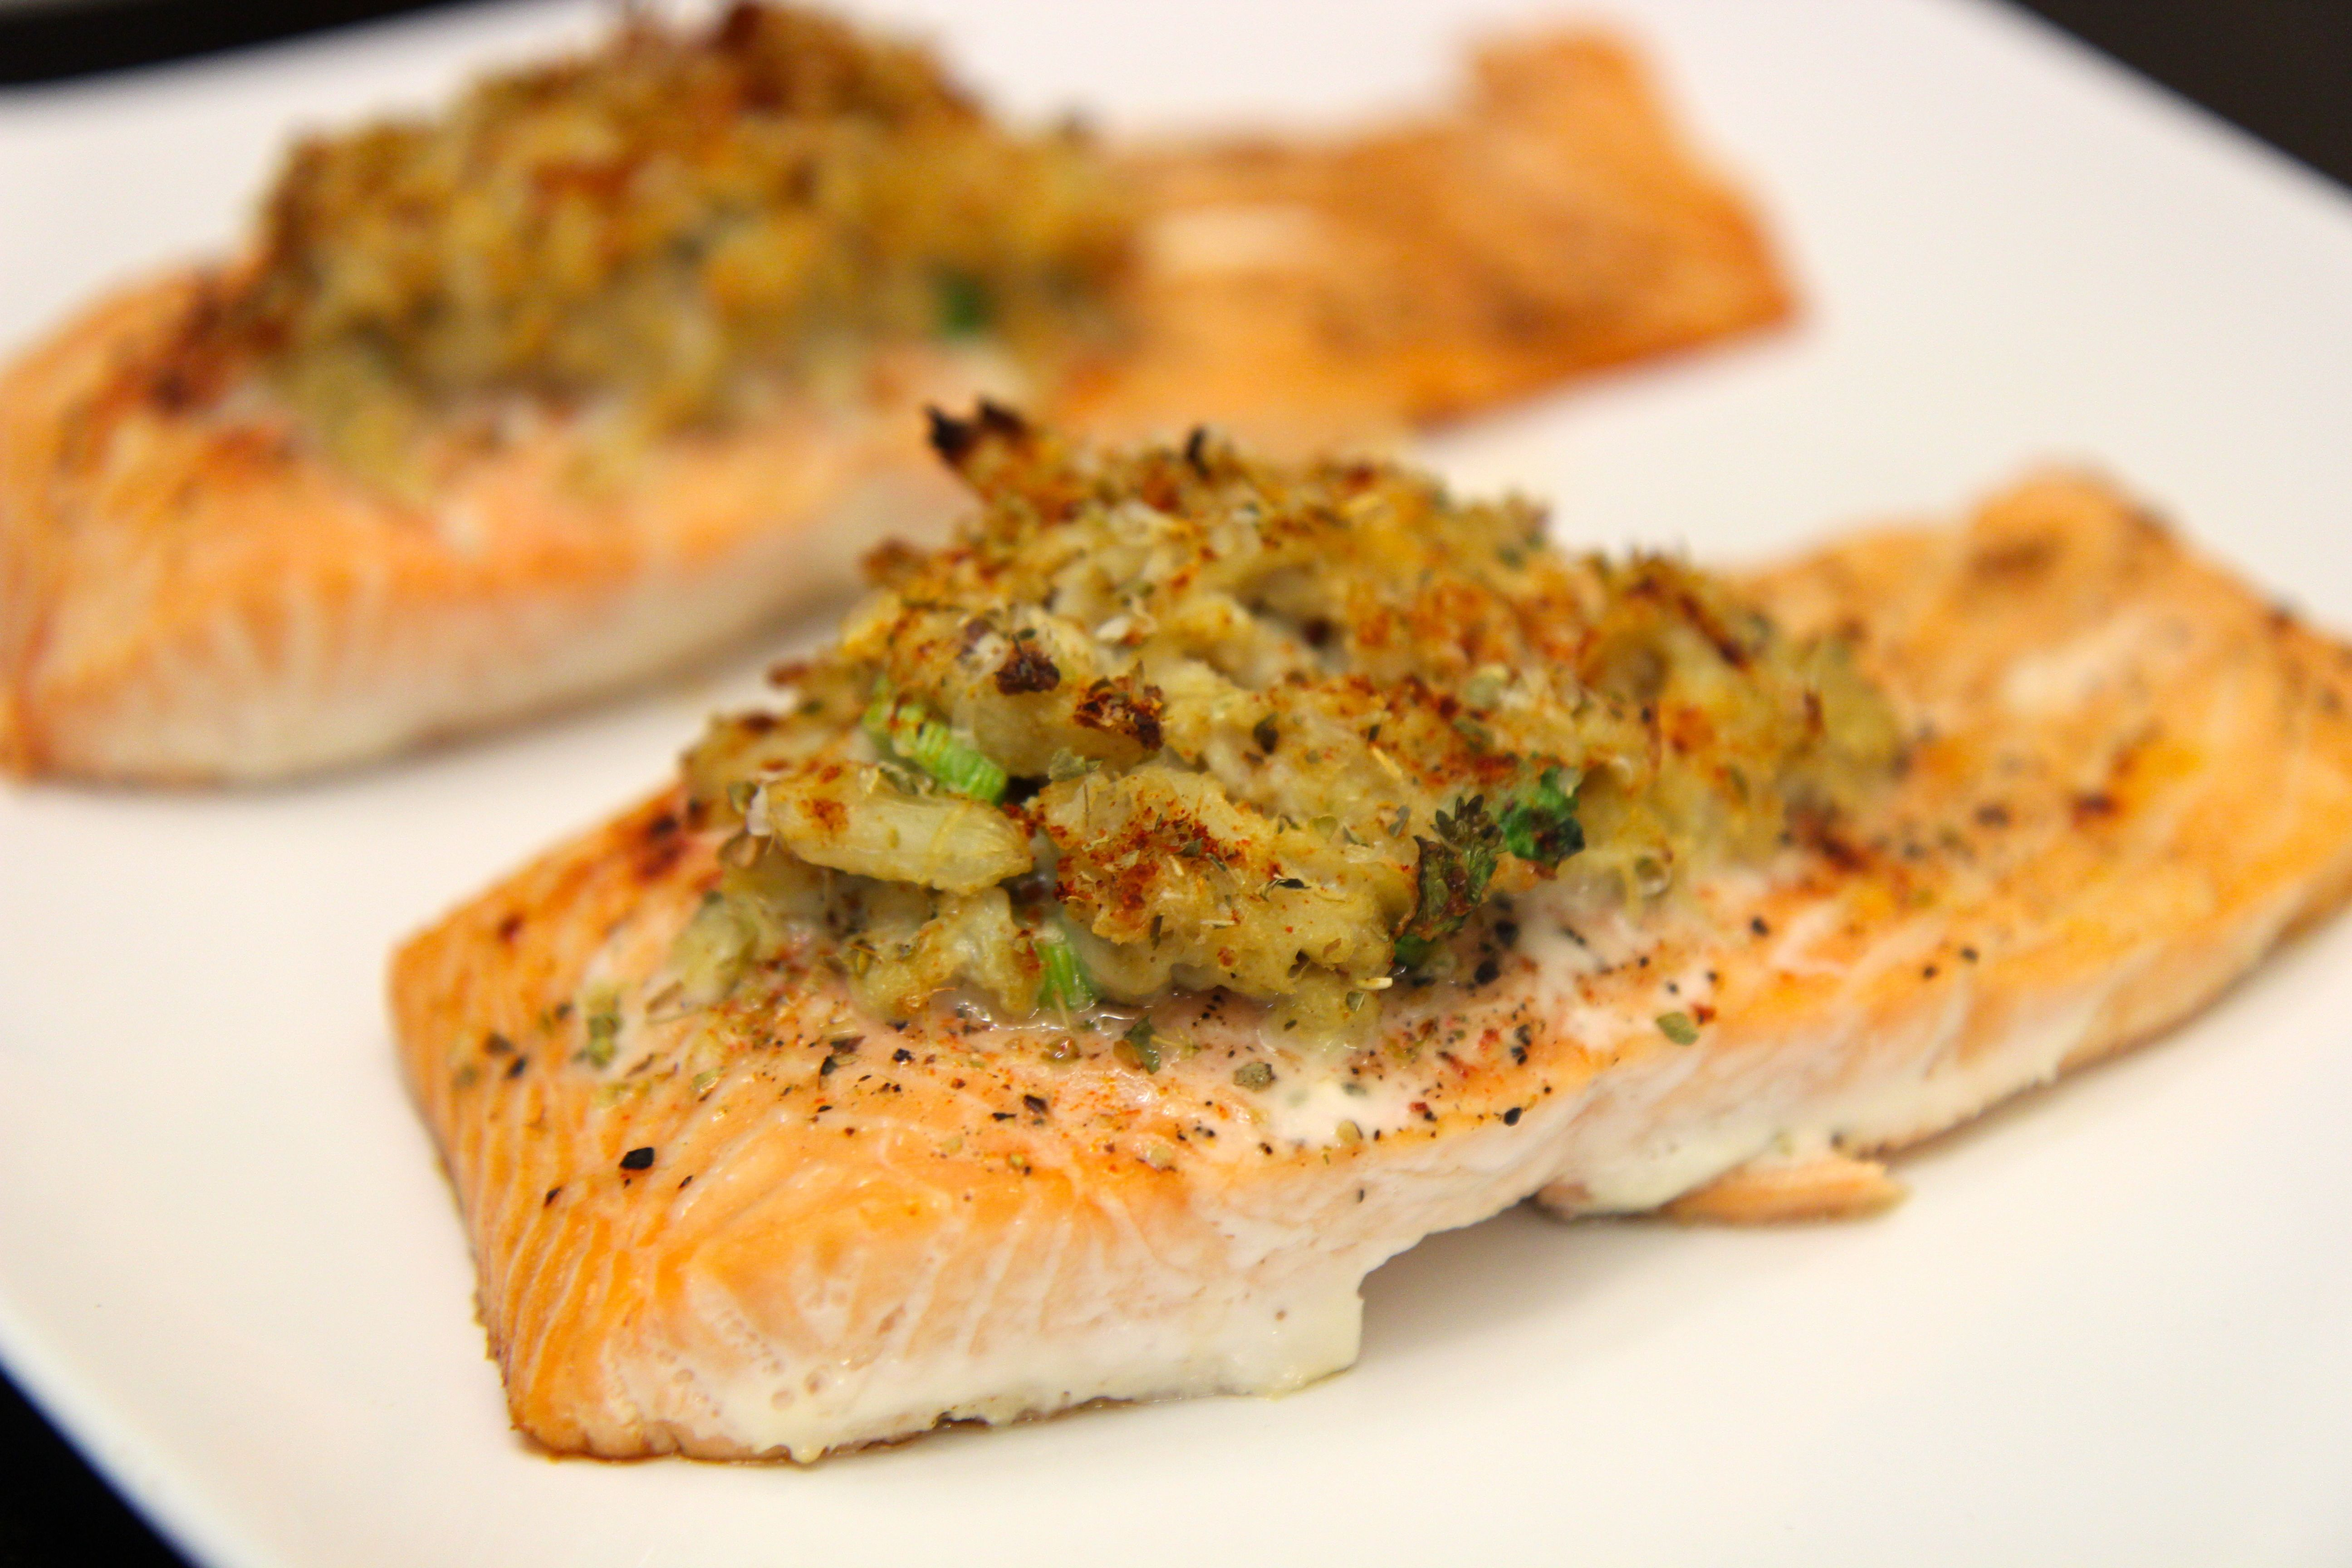 These crab stuffed Salmon use very little spices and are a light meal that's filling.